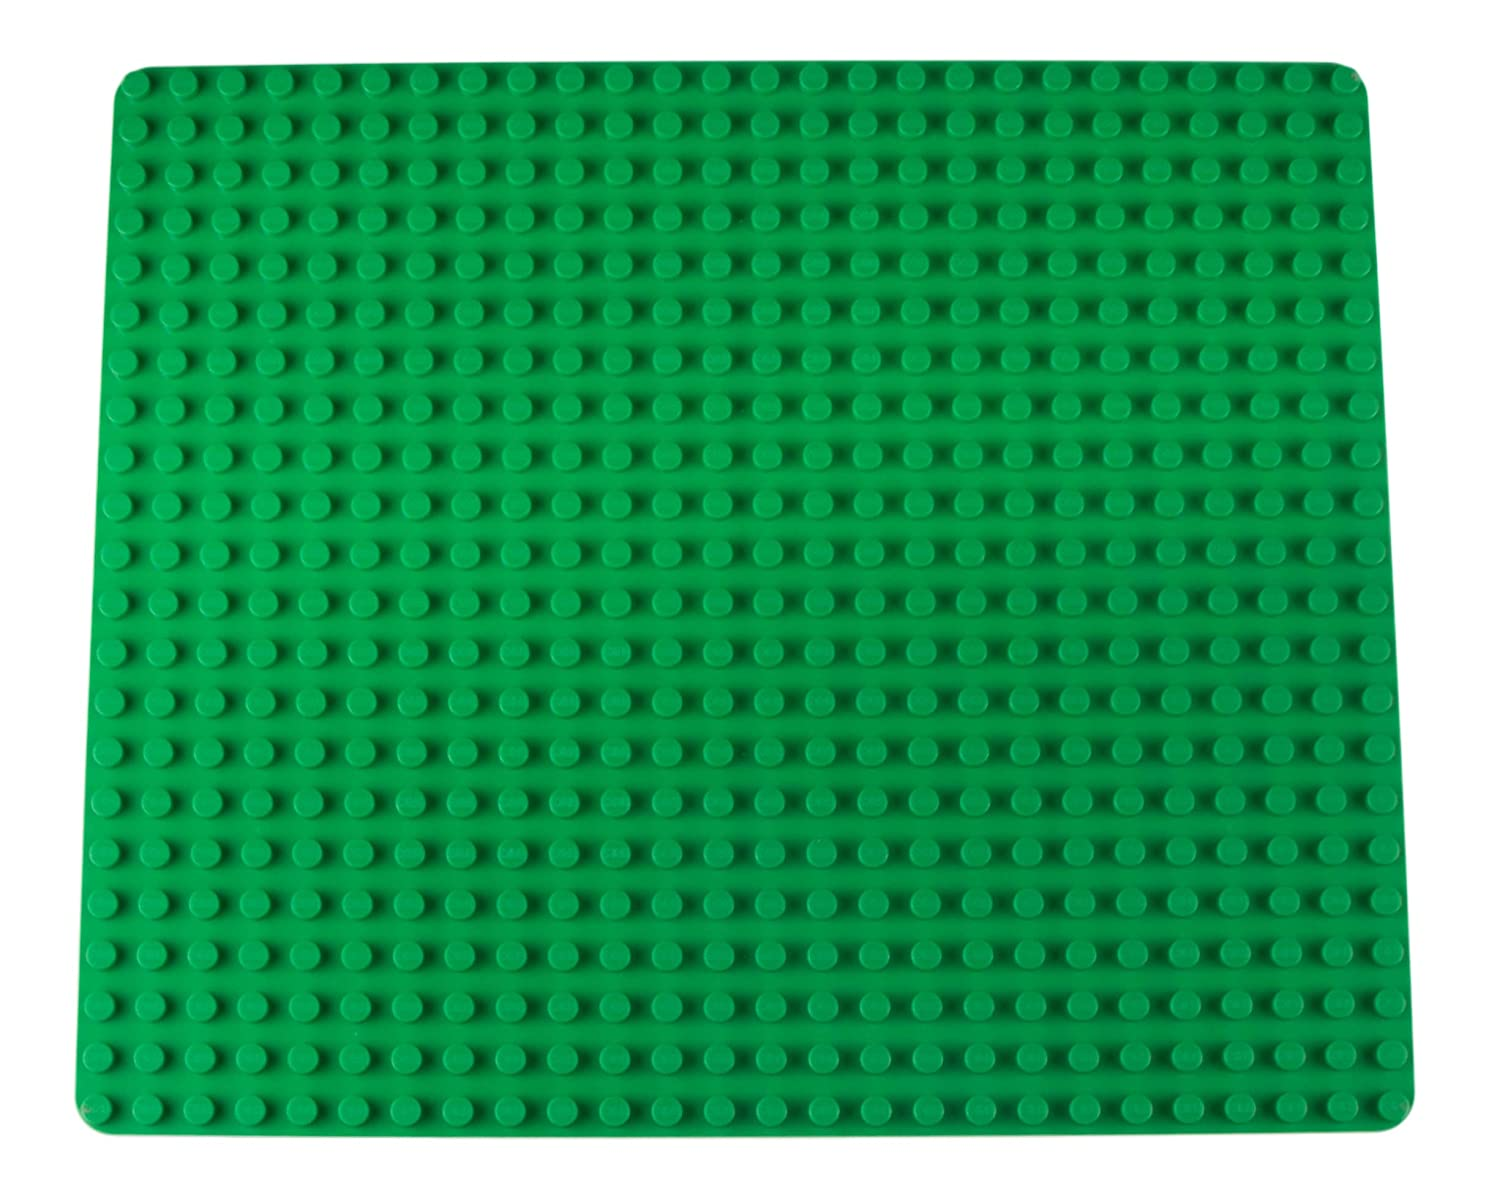 "Classic Stackable Baseplate for Large Building Bricks by Strictly Briks | 100% Compatible with All Major Brands | Large Pegs for Toddlers | Single Large Tight Fit Base Plate in Green (16.25"" x 13.75"") Review"